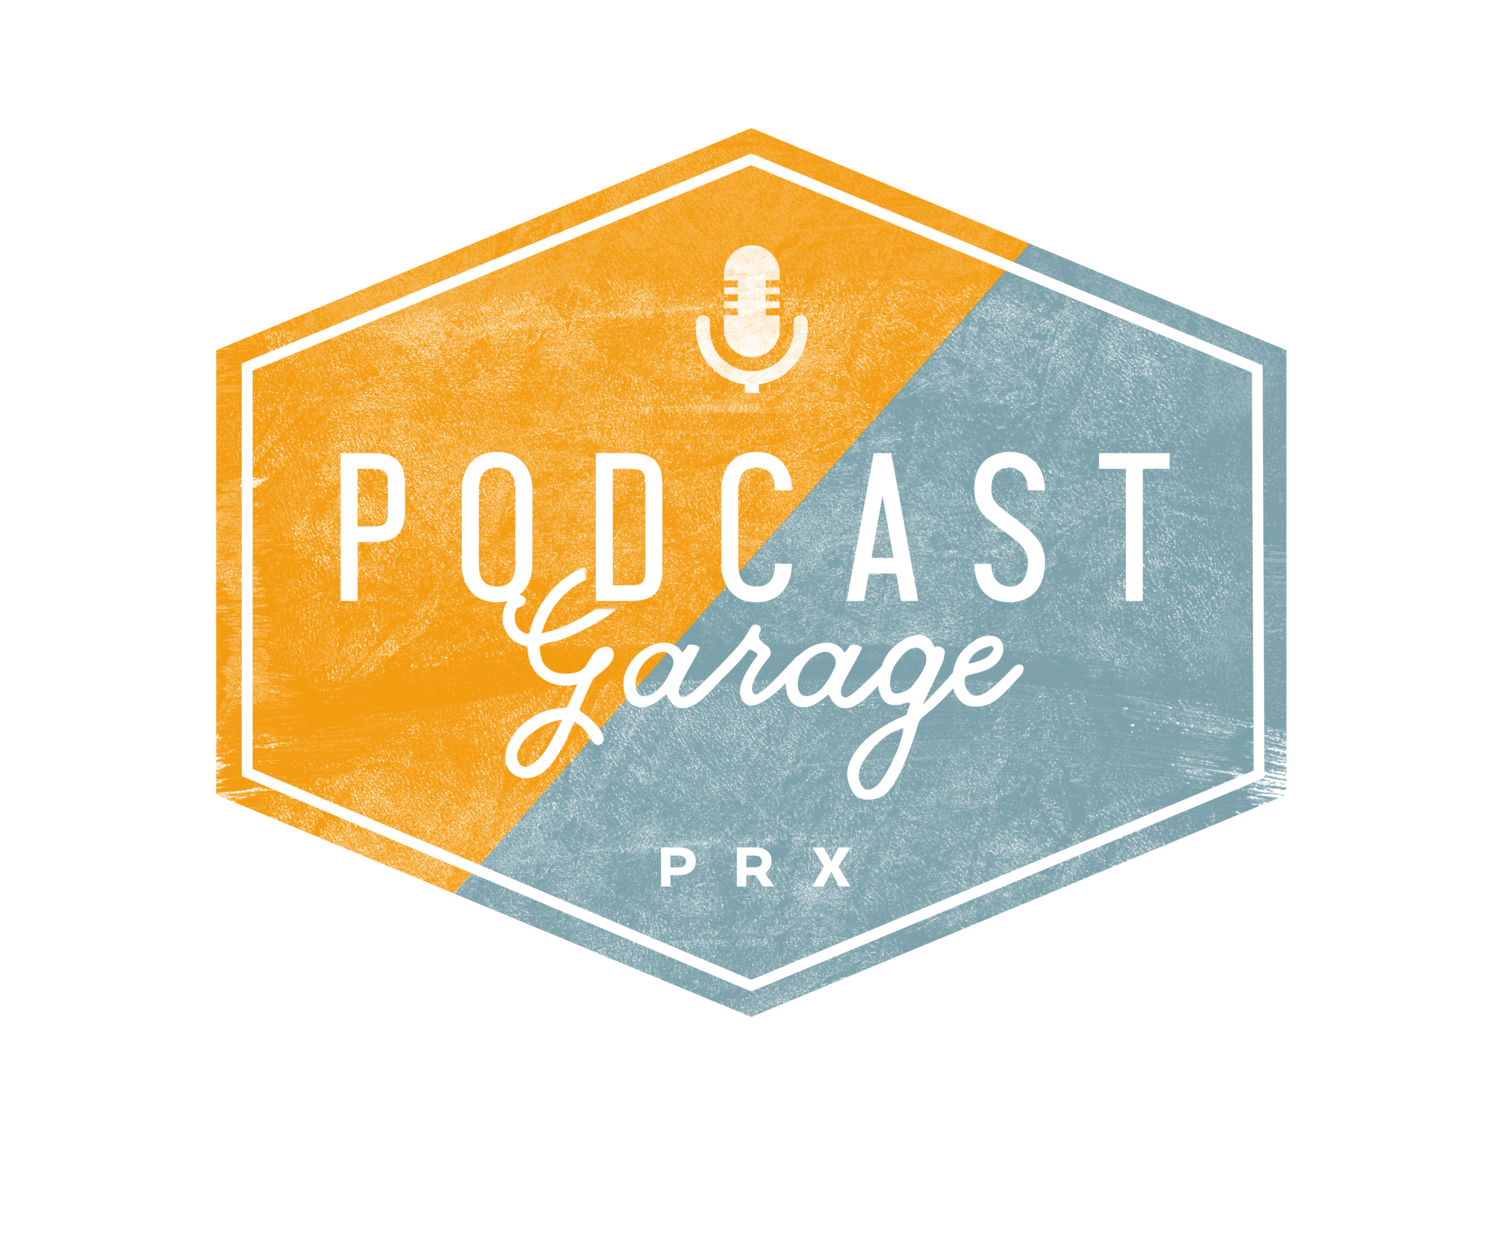 Podcast Garage